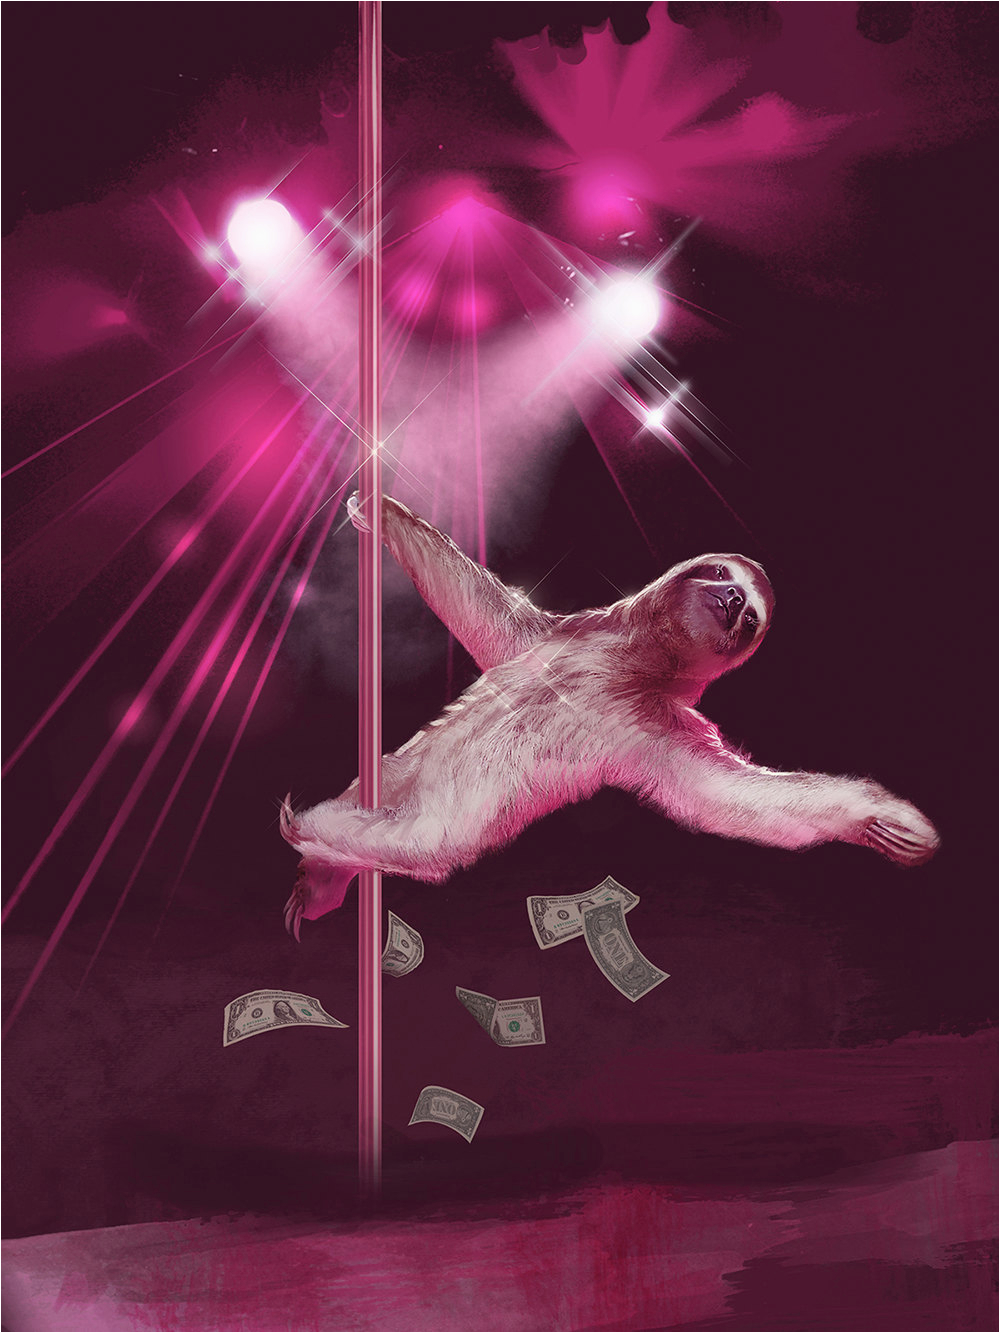 stripper sloth slothzilla 3 pack birthday card greeting cards matching envelopes included